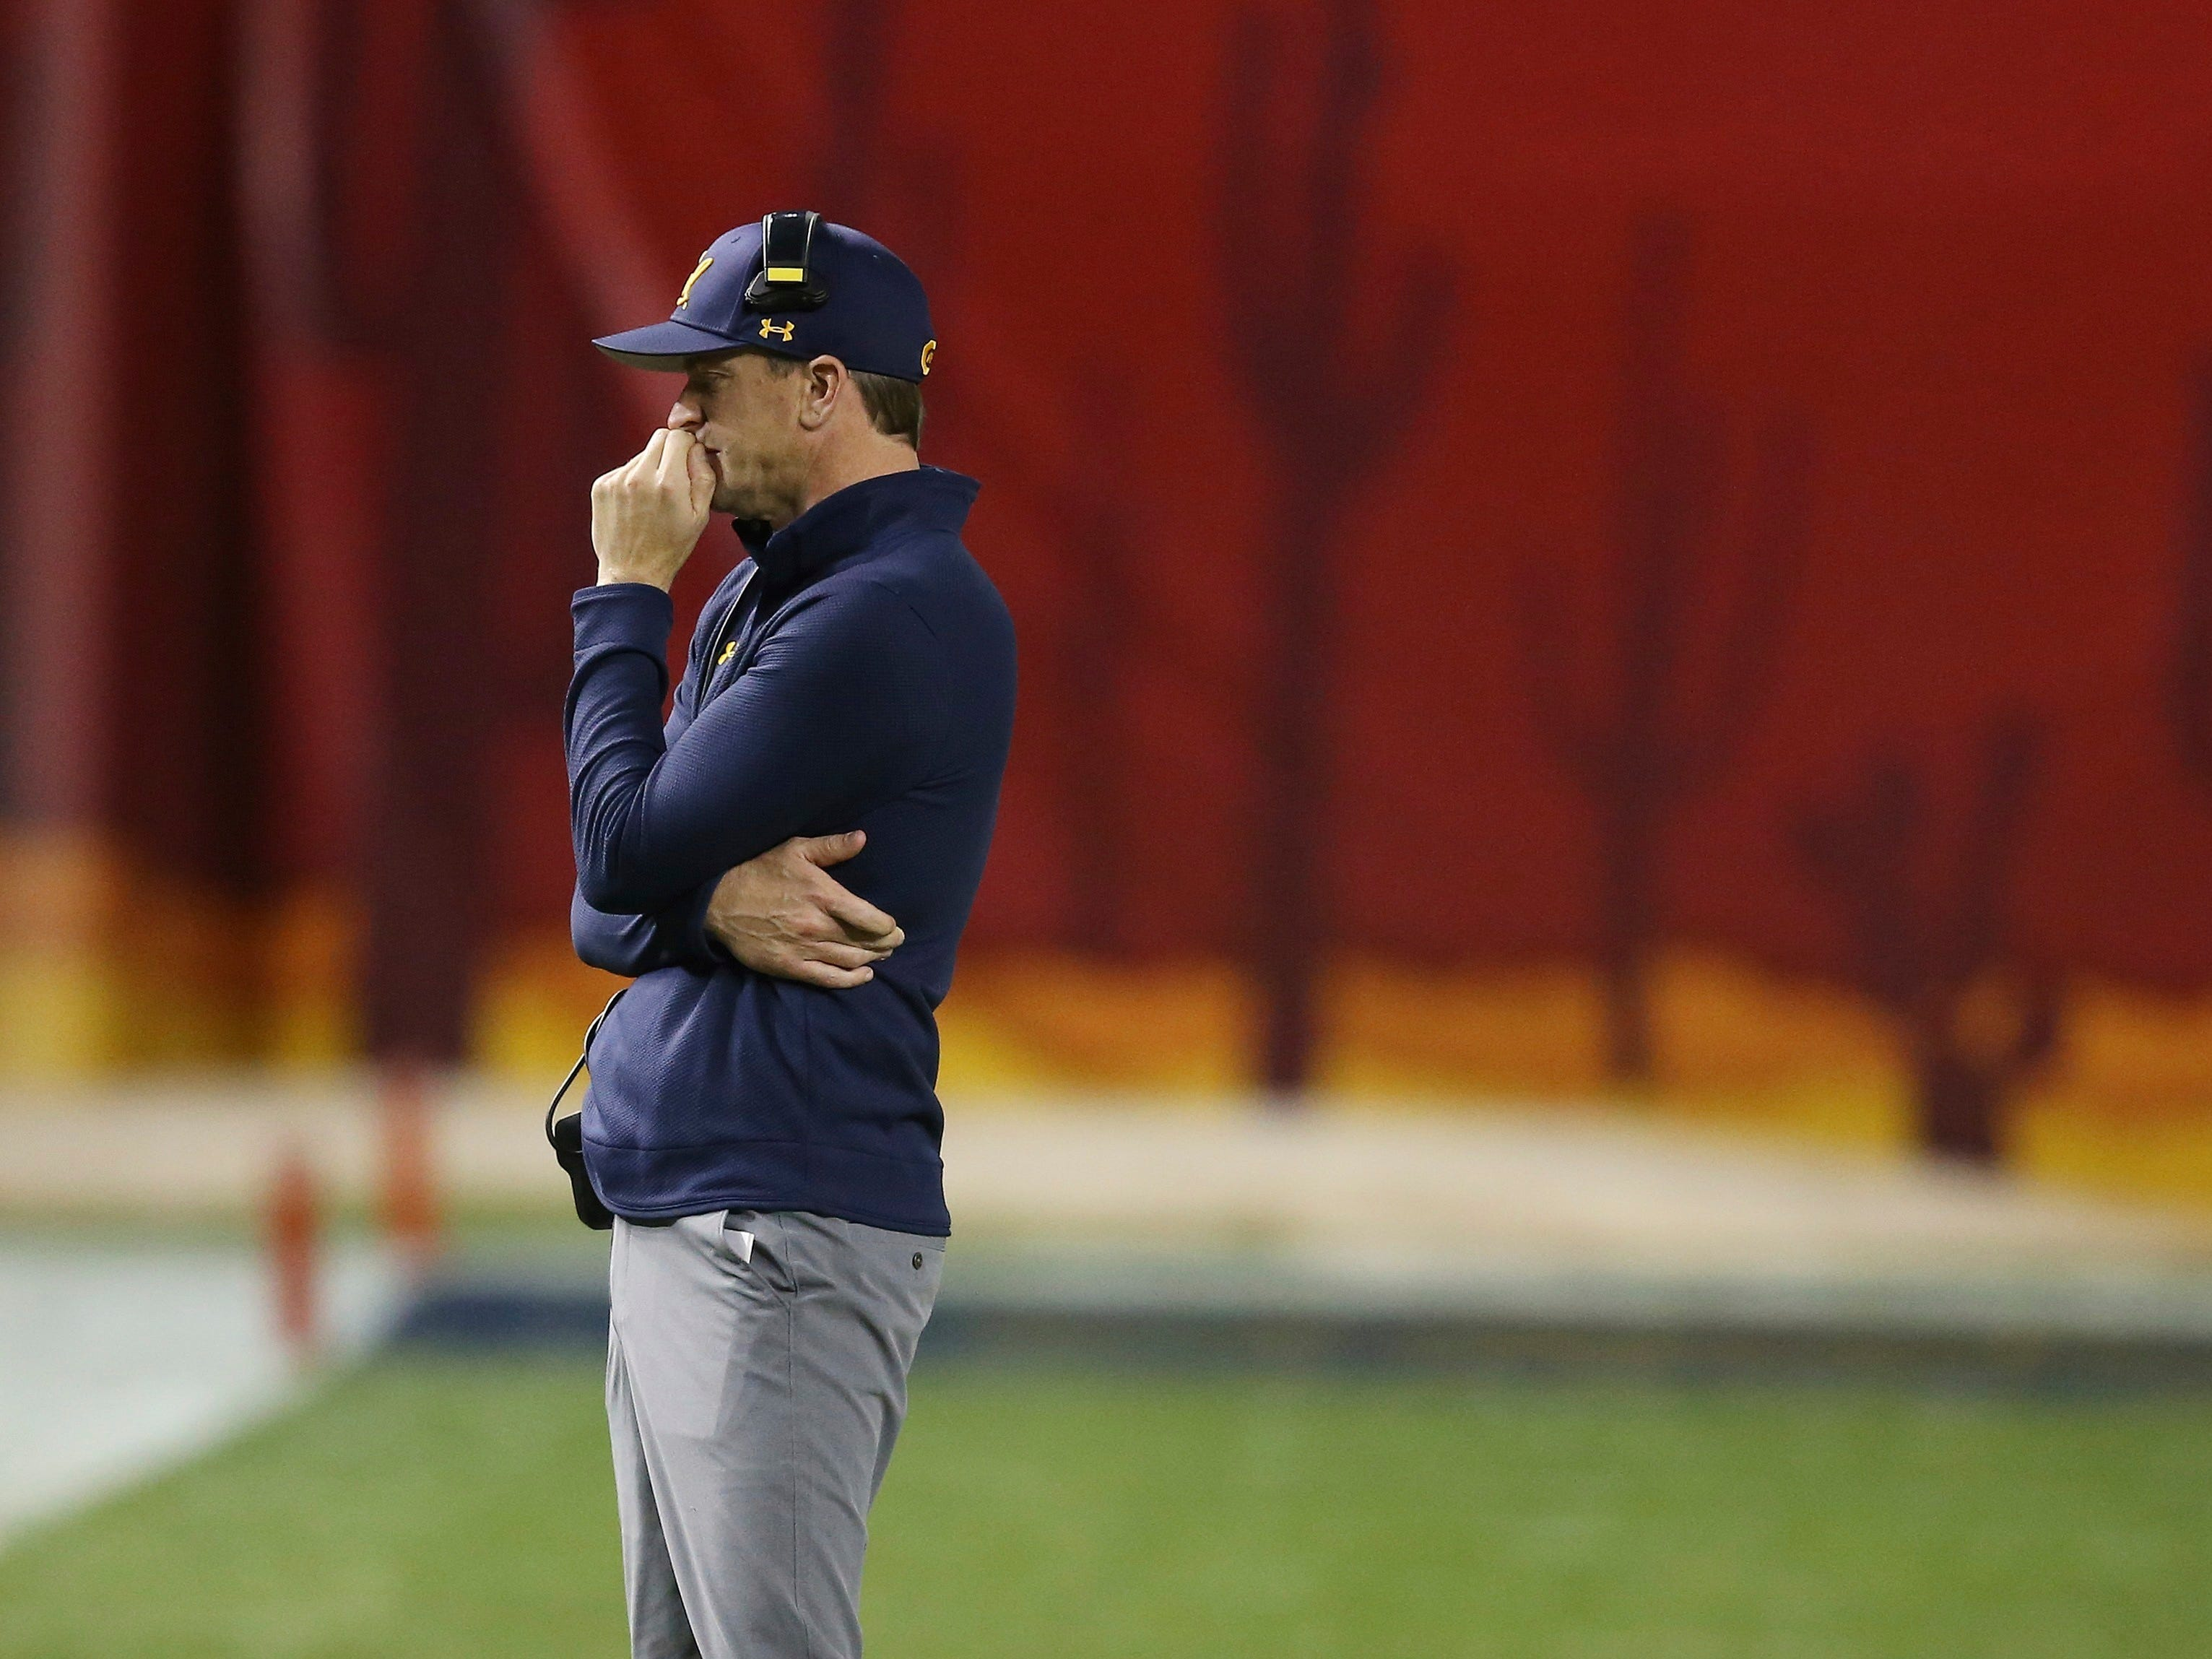 California head coach Justin Wilcox pauses on the sidelines during the second half of the Cheez-It Bowl NCAA college football game against TCU Thursday, Dec. 27, 2018, in Phoenix. TCU defeated California 10-7 in overtime.